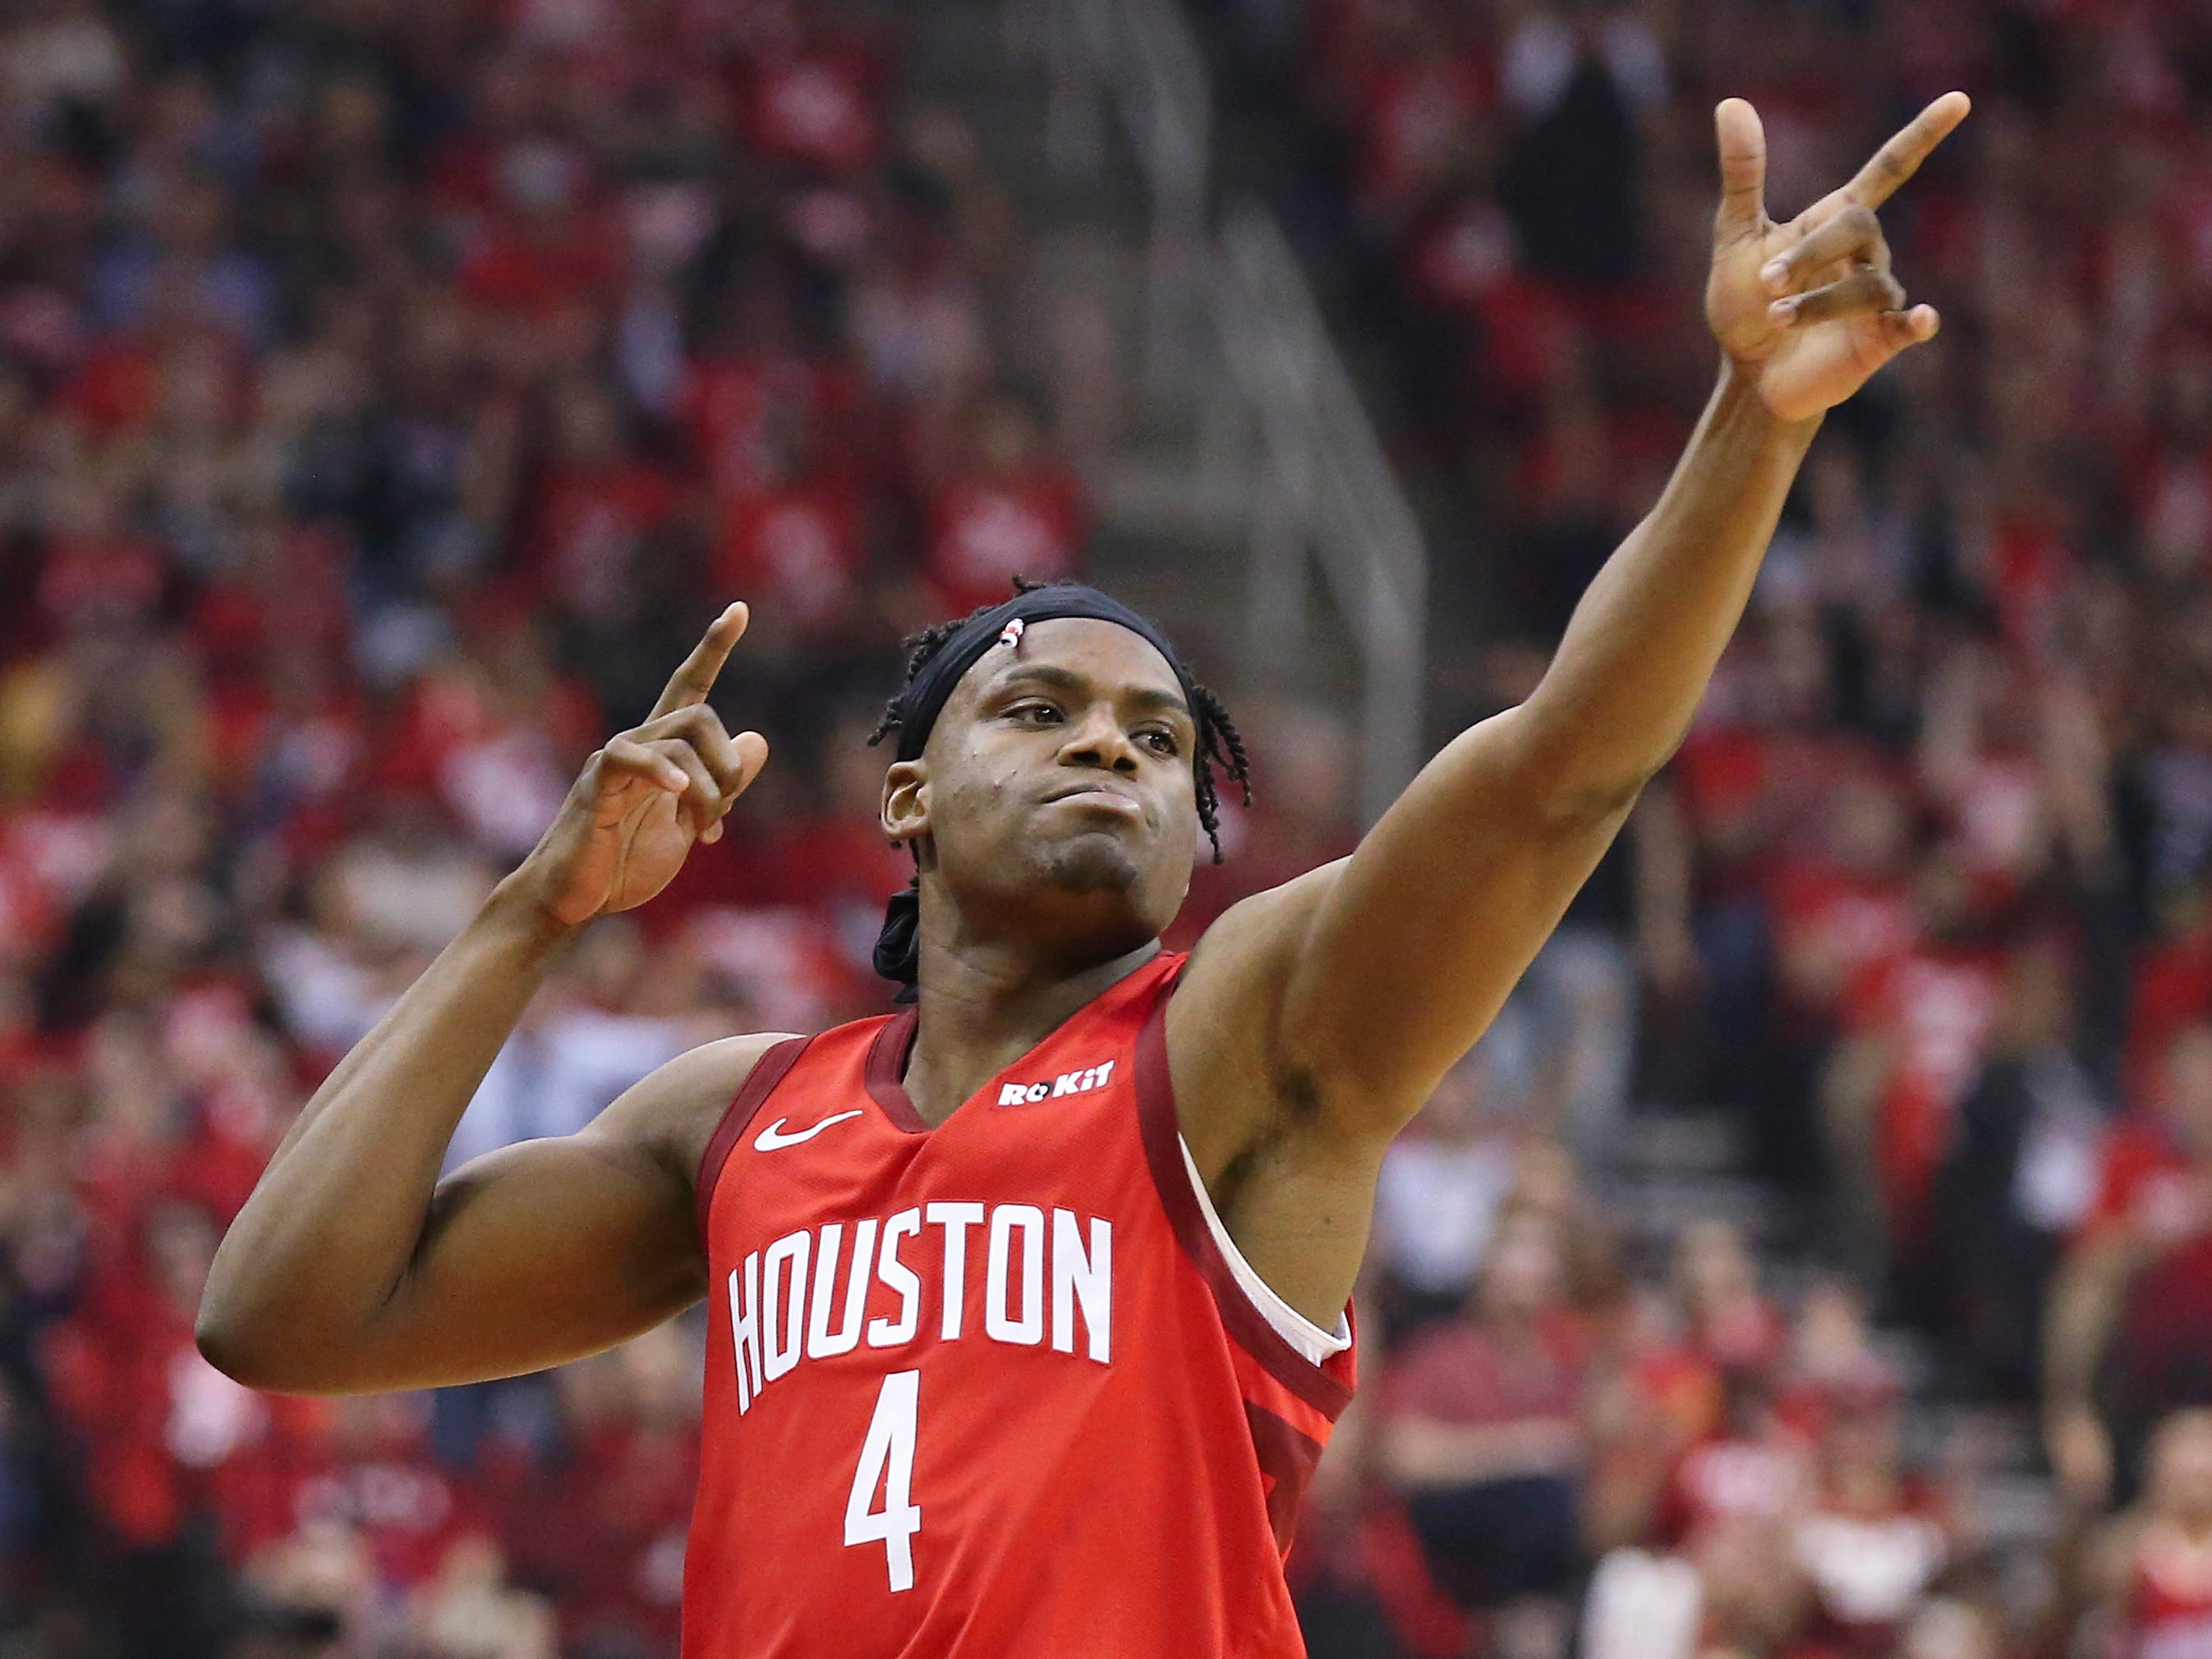 April 17: Rockets forward Danuel House Jr. reacts after making a basket against the Jazz in Game 2 at Toyota Center. The Rockets won the game, 118-98.